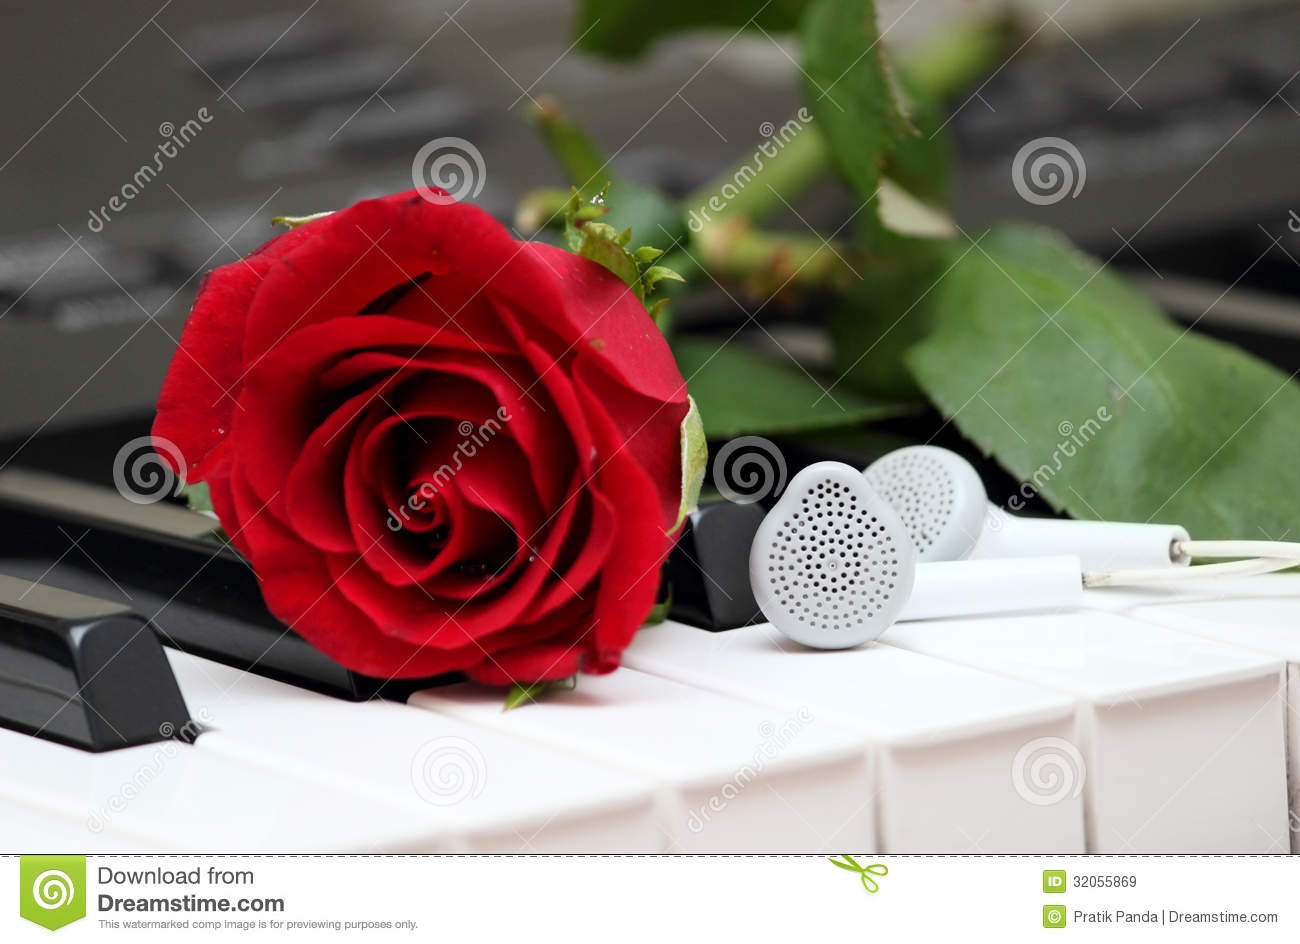 Romantic Digital Instrumental Music Stock Image - Image of pair